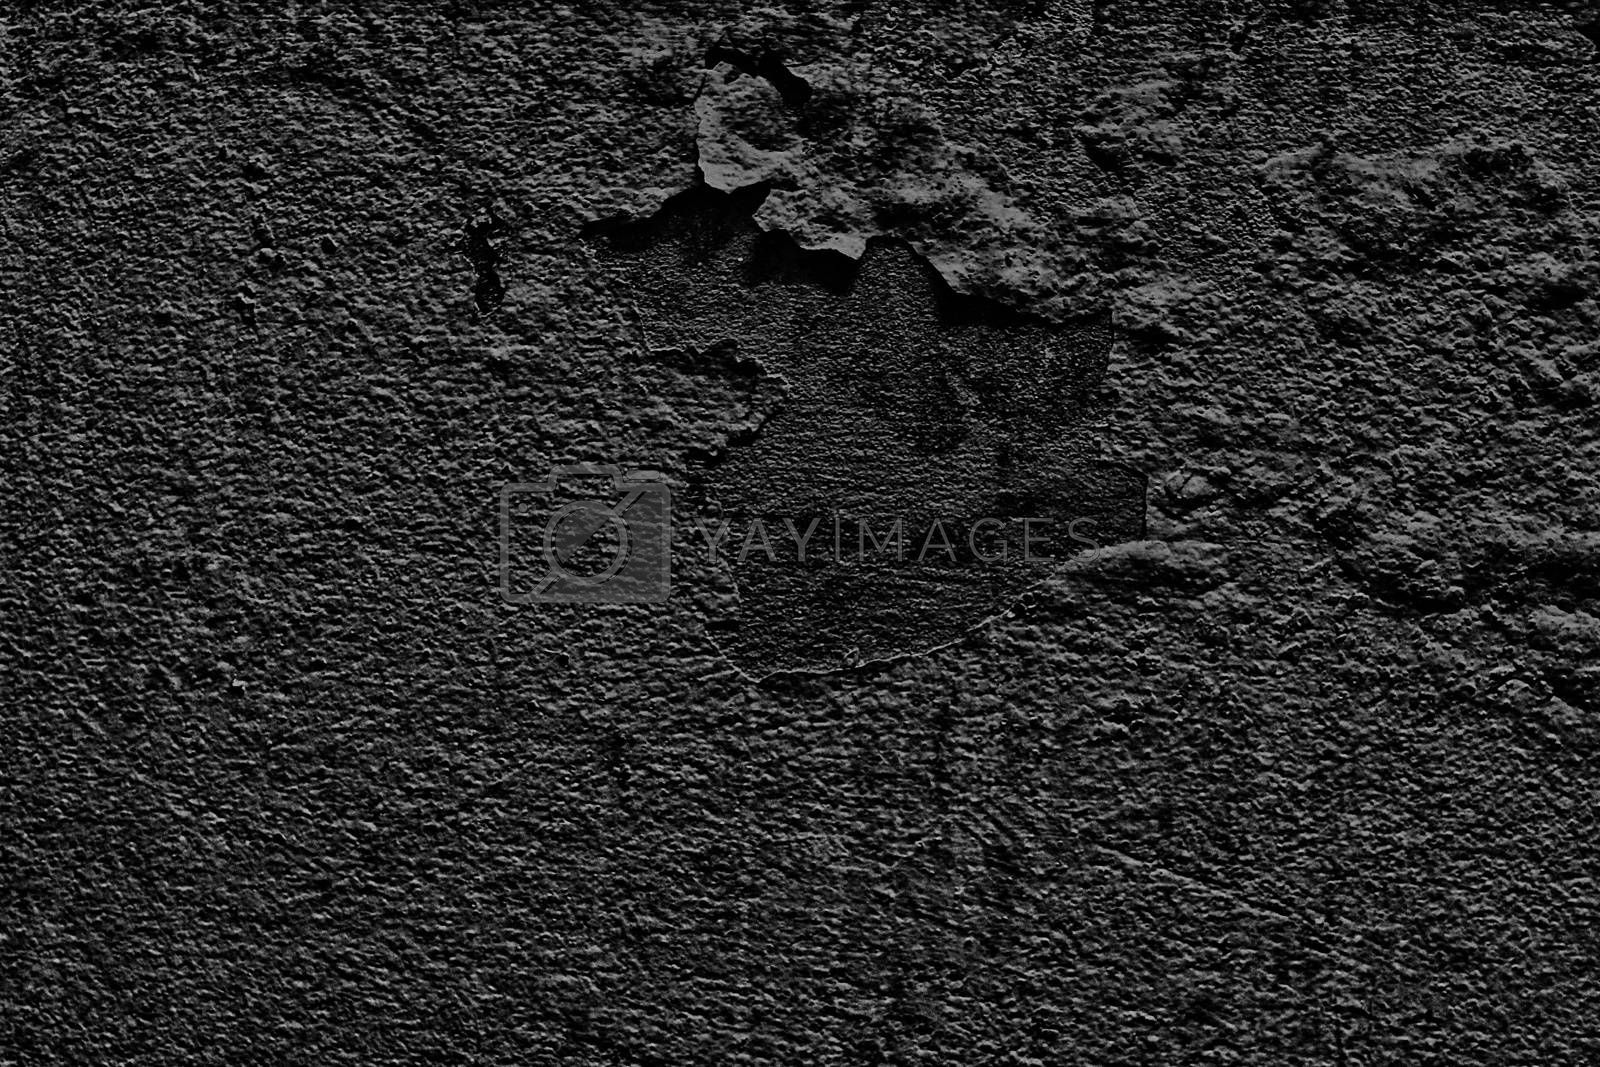 Royalty free image of Black color Paint peeling cuticles on textured Wall plaster Siemens, Background Cracked walls inbreeding, Abstract wall Black background texture by cgdeaw